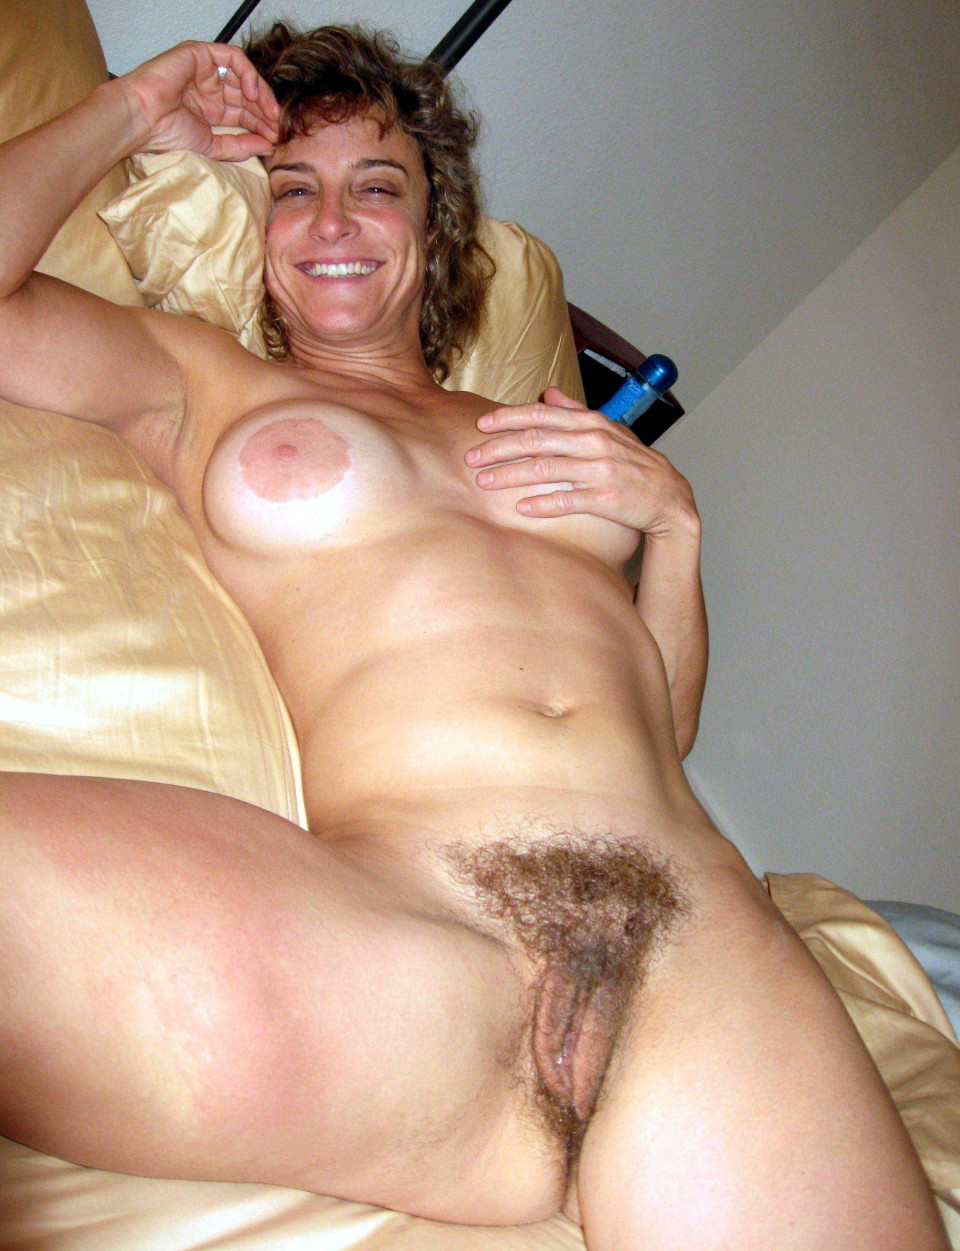 drunk girls passed out nude